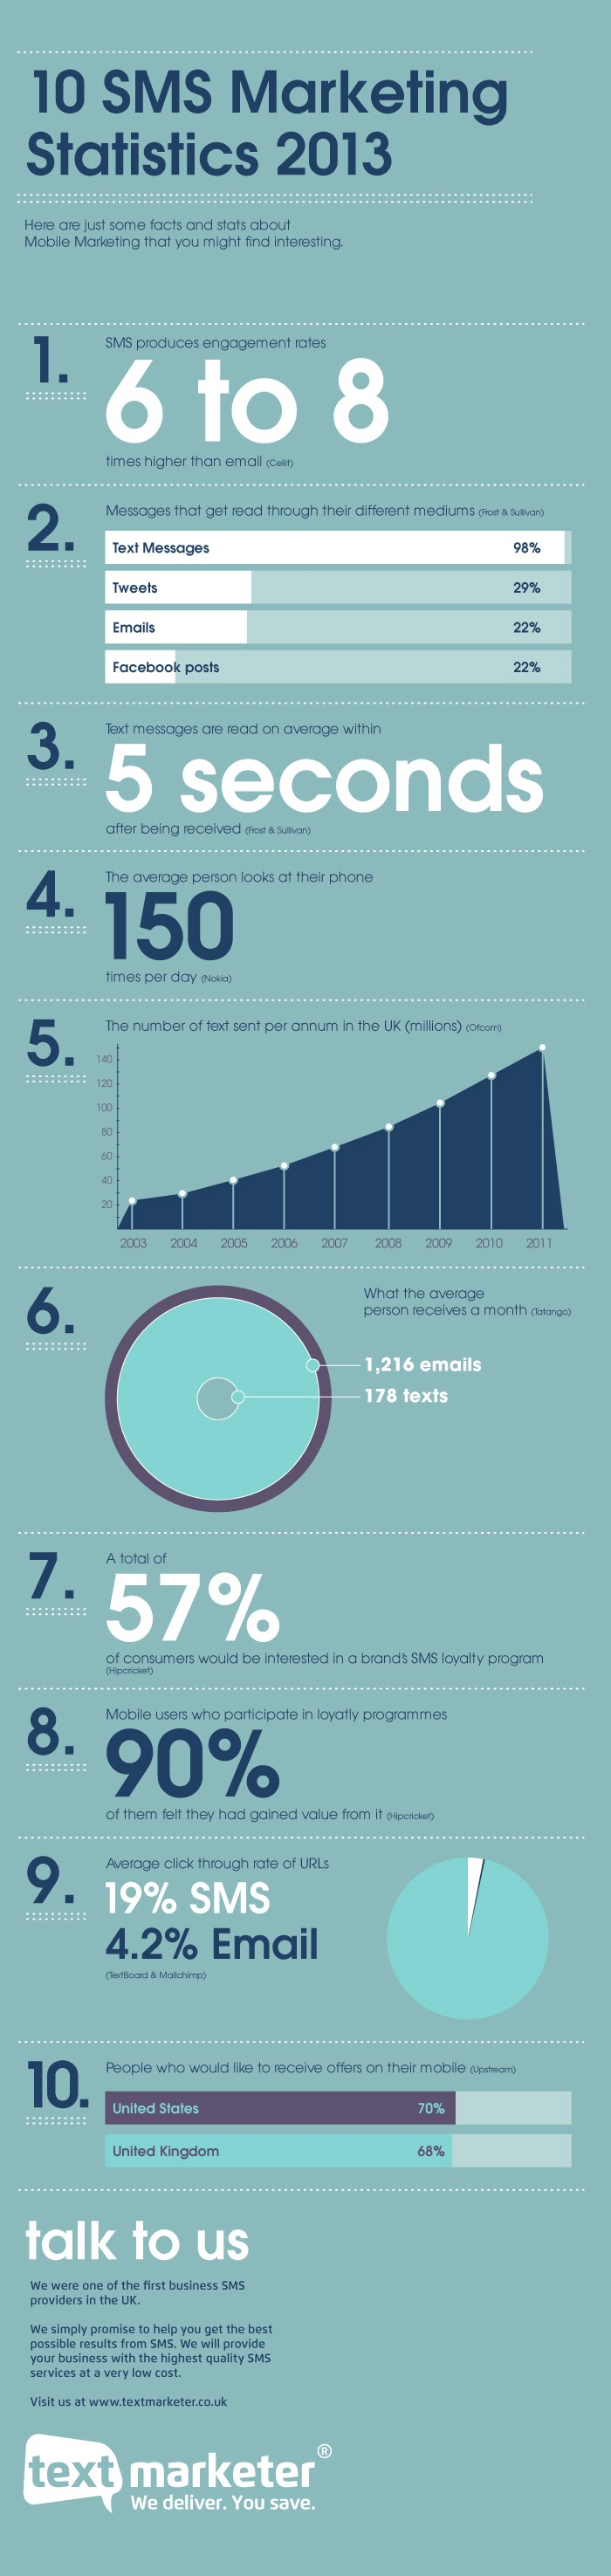 10-Mobile-Marketing-Statistics-2013 #Infographic